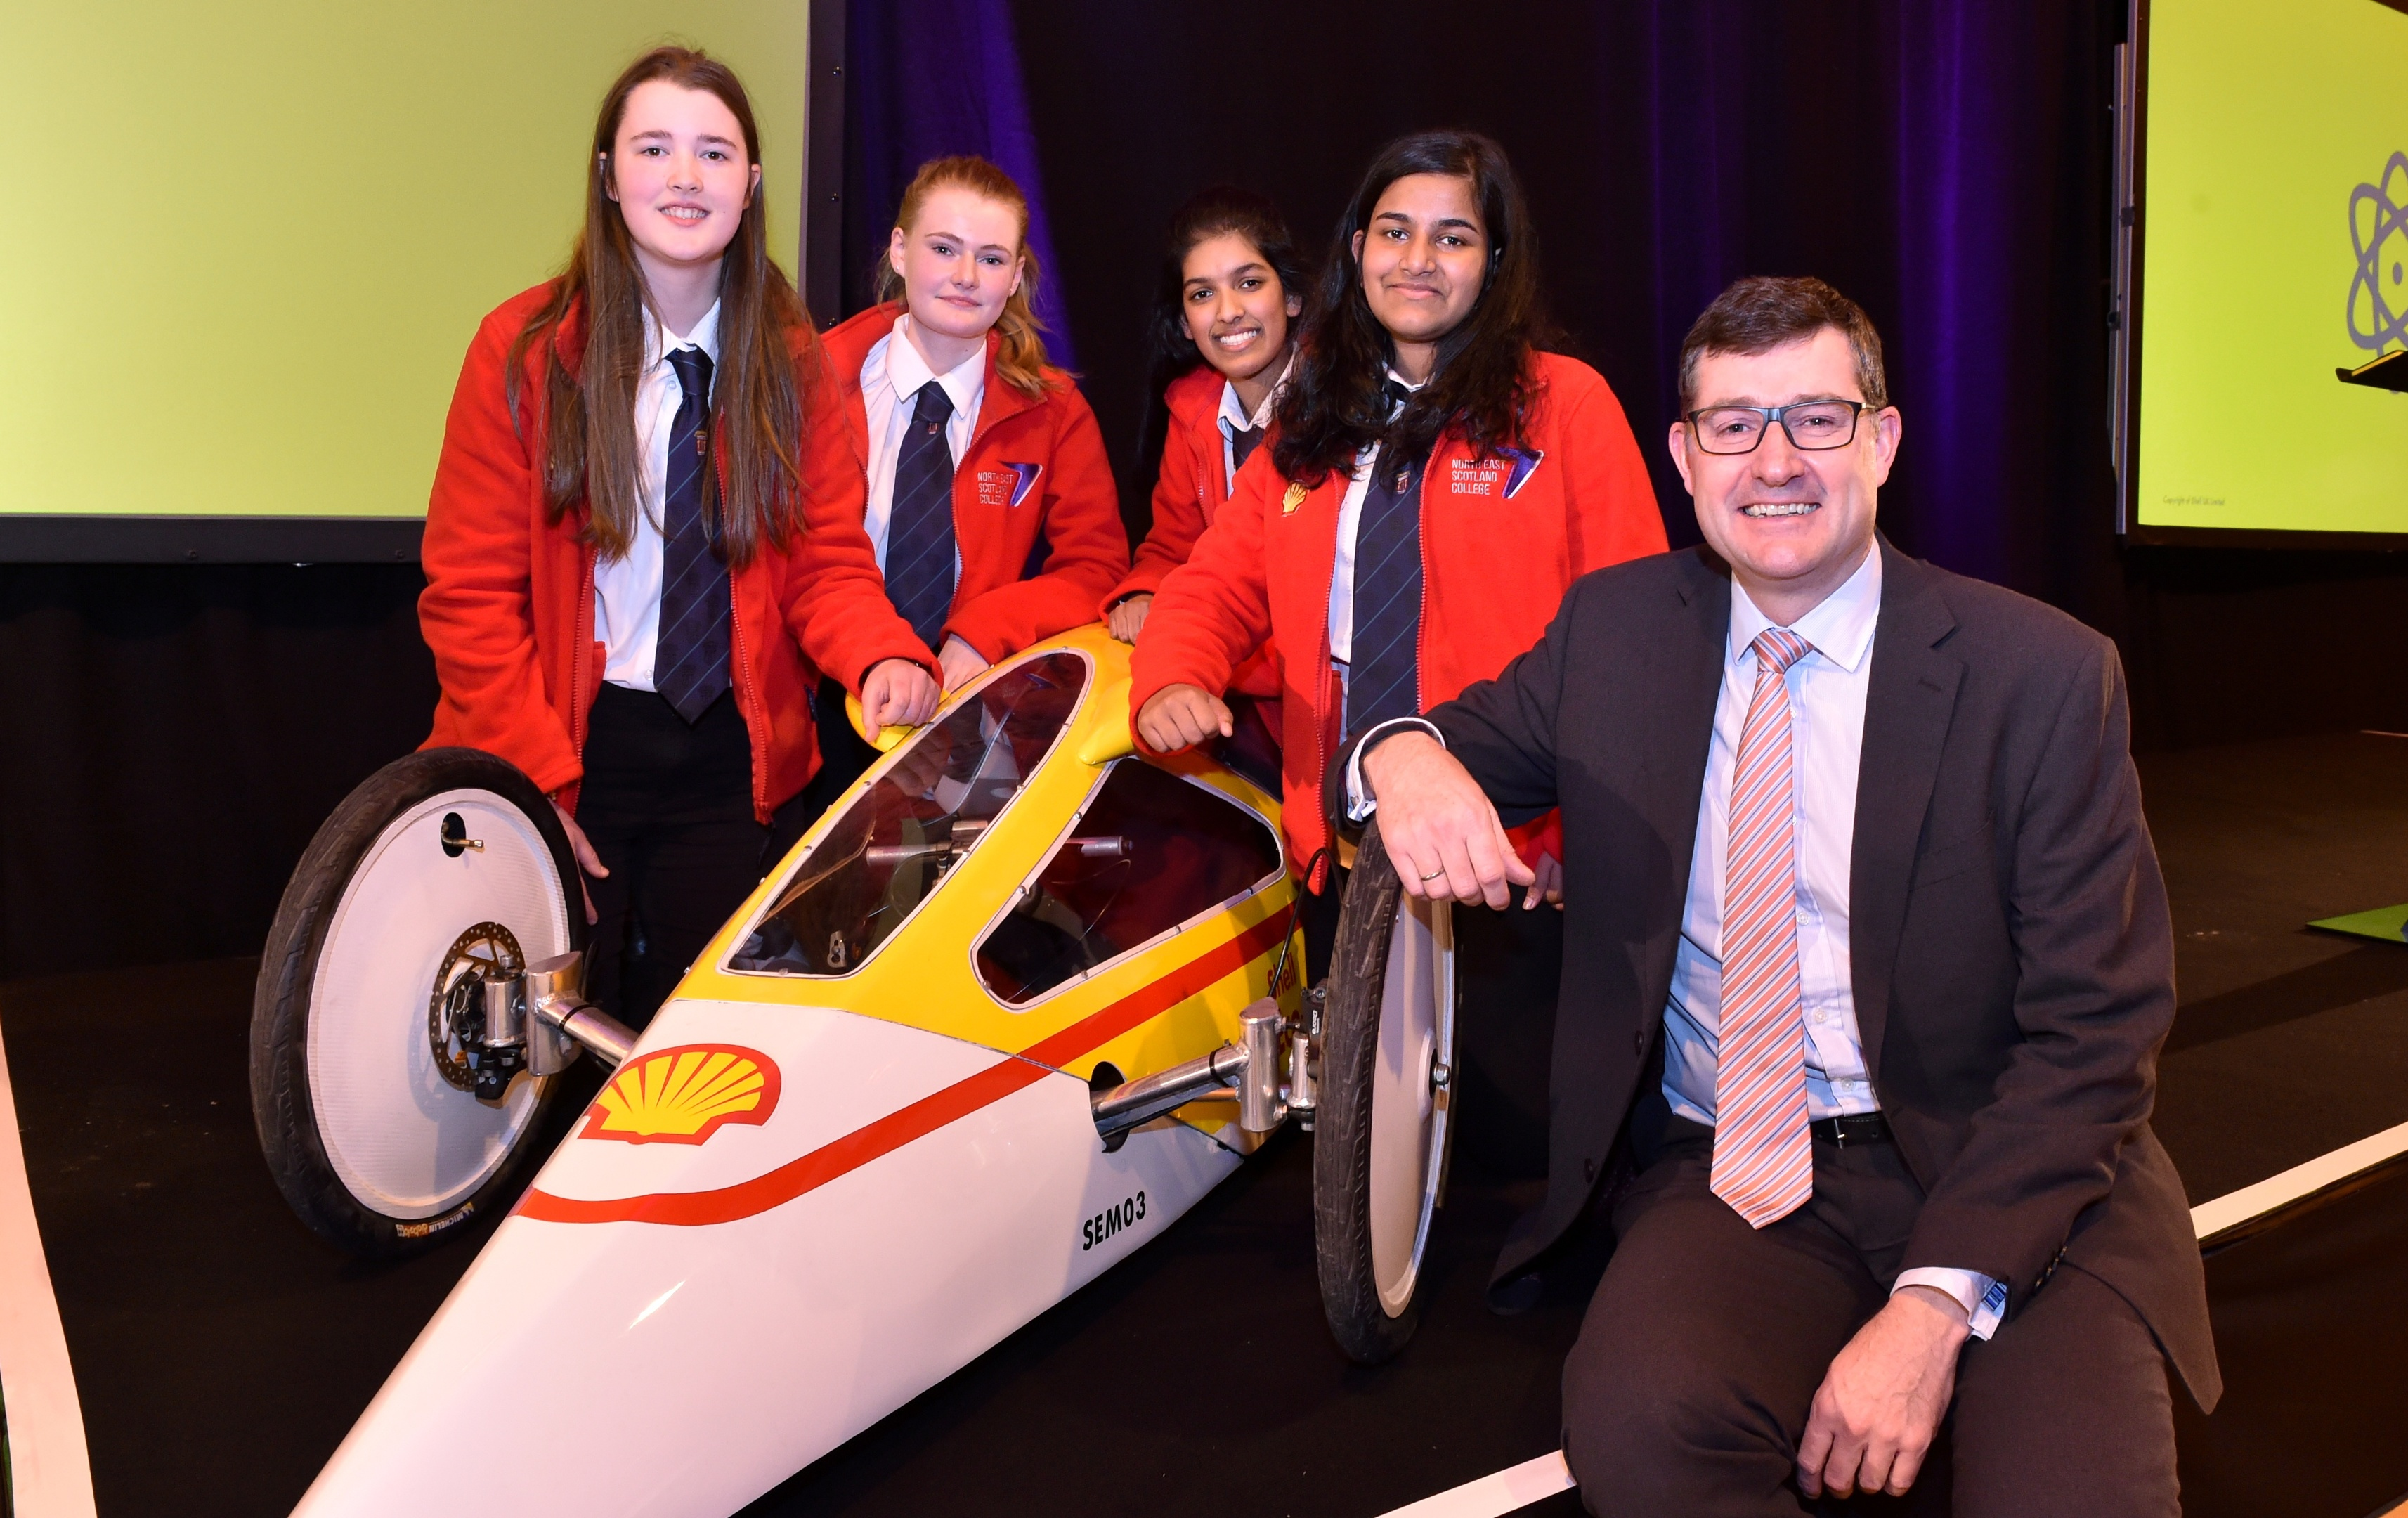 Shell - Woodbank House, North Deeside Road - Shell's annual Girls in Energy event. Winners - Hazlehead (from left) Kirsty Hyslop 16, Lillian Kelly 16, Nova Paulose 16 and Kessia Thomas 16 with Shell's Steve Phimister, Upstream Vice President for UK and Ireland. Picture by COLIN RENNIE  December 1, 2017.